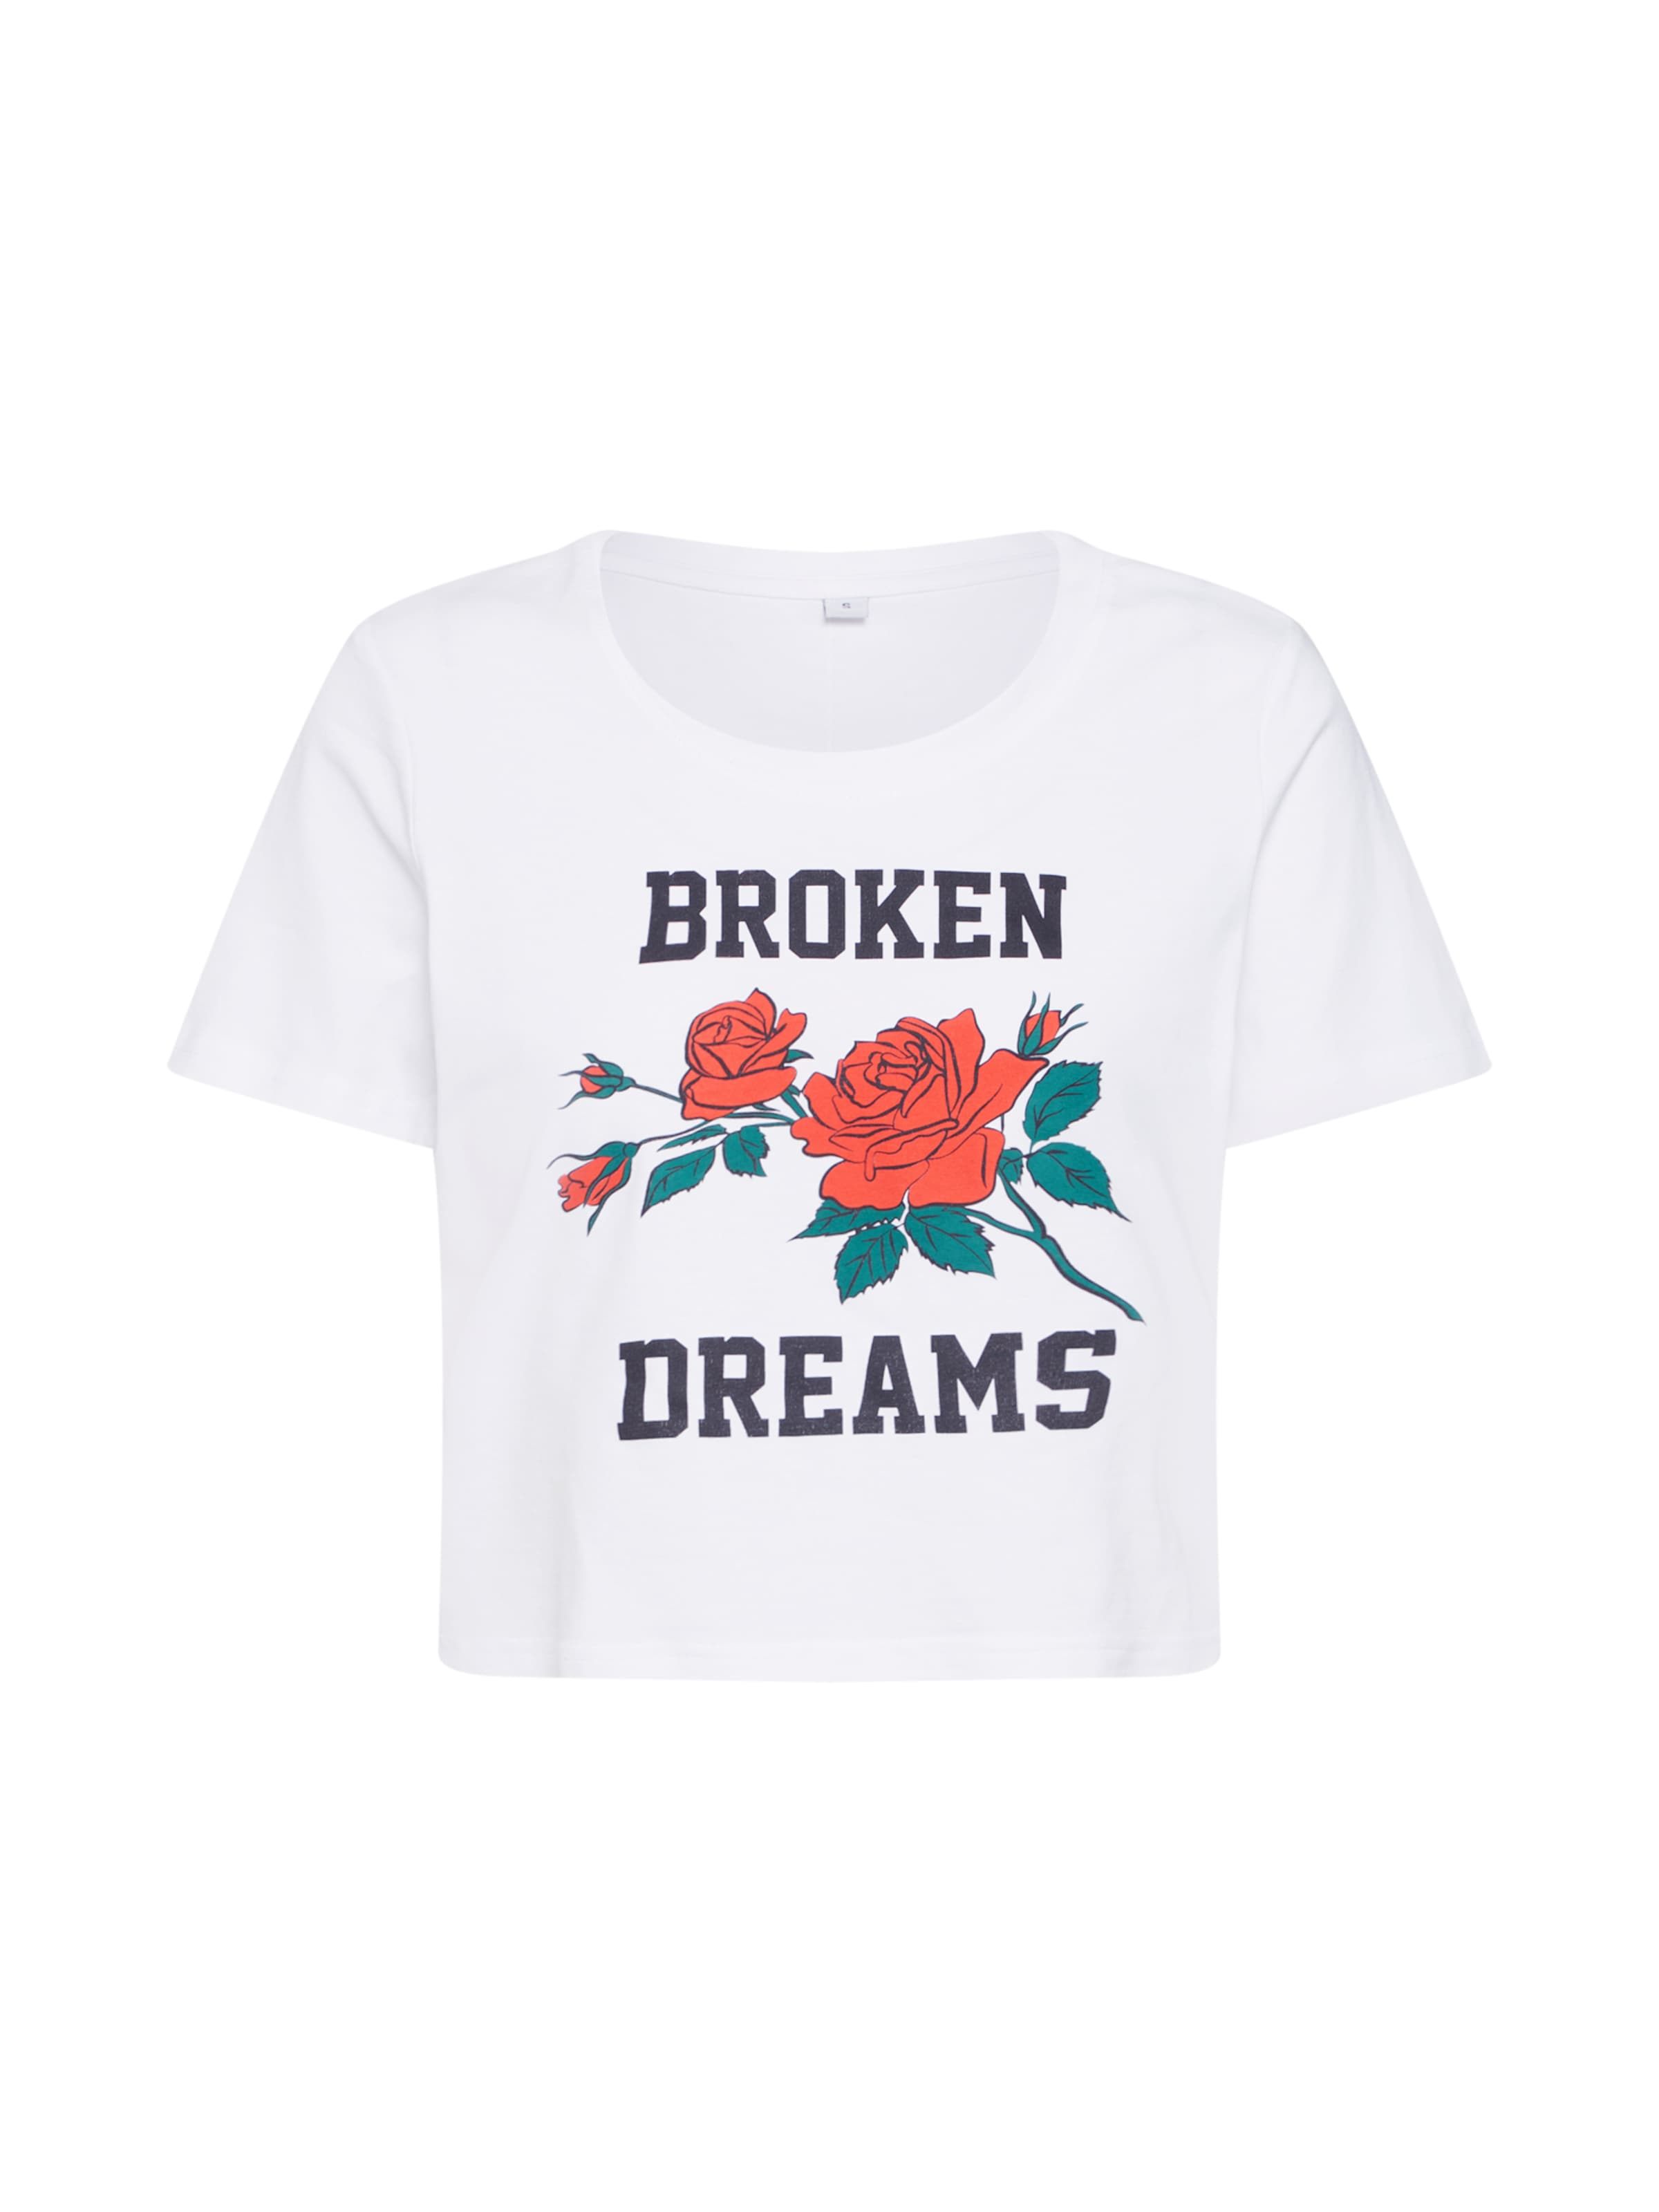 'broken In Shirt Dreams' Merchcode MischfarbenWeiß IYvb6mf7gy